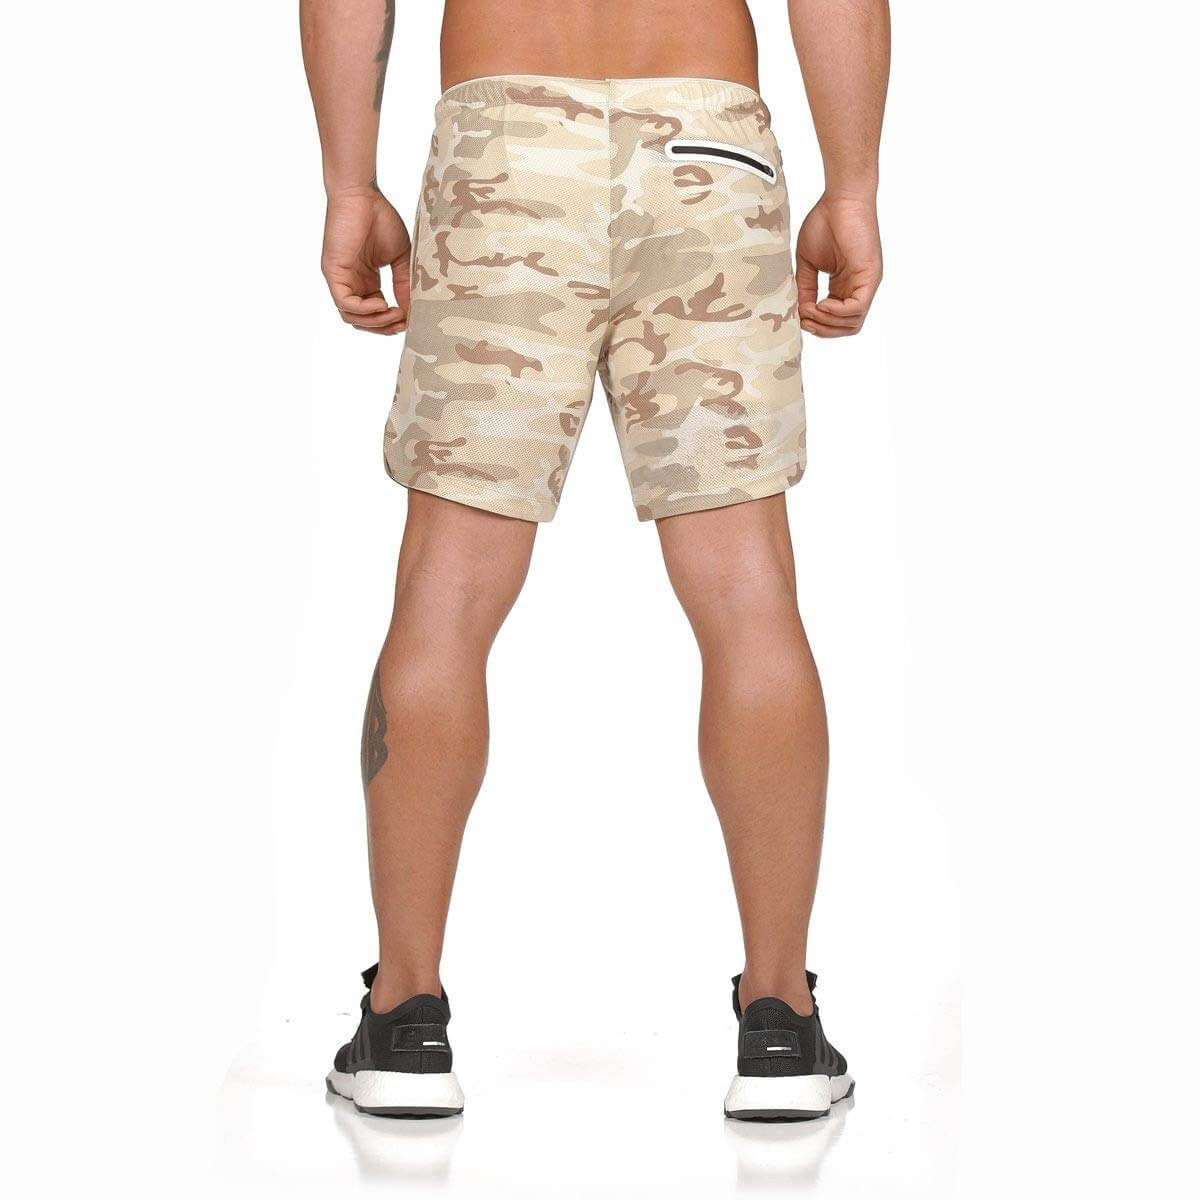 Secure Pocket Fitness Shorts Online